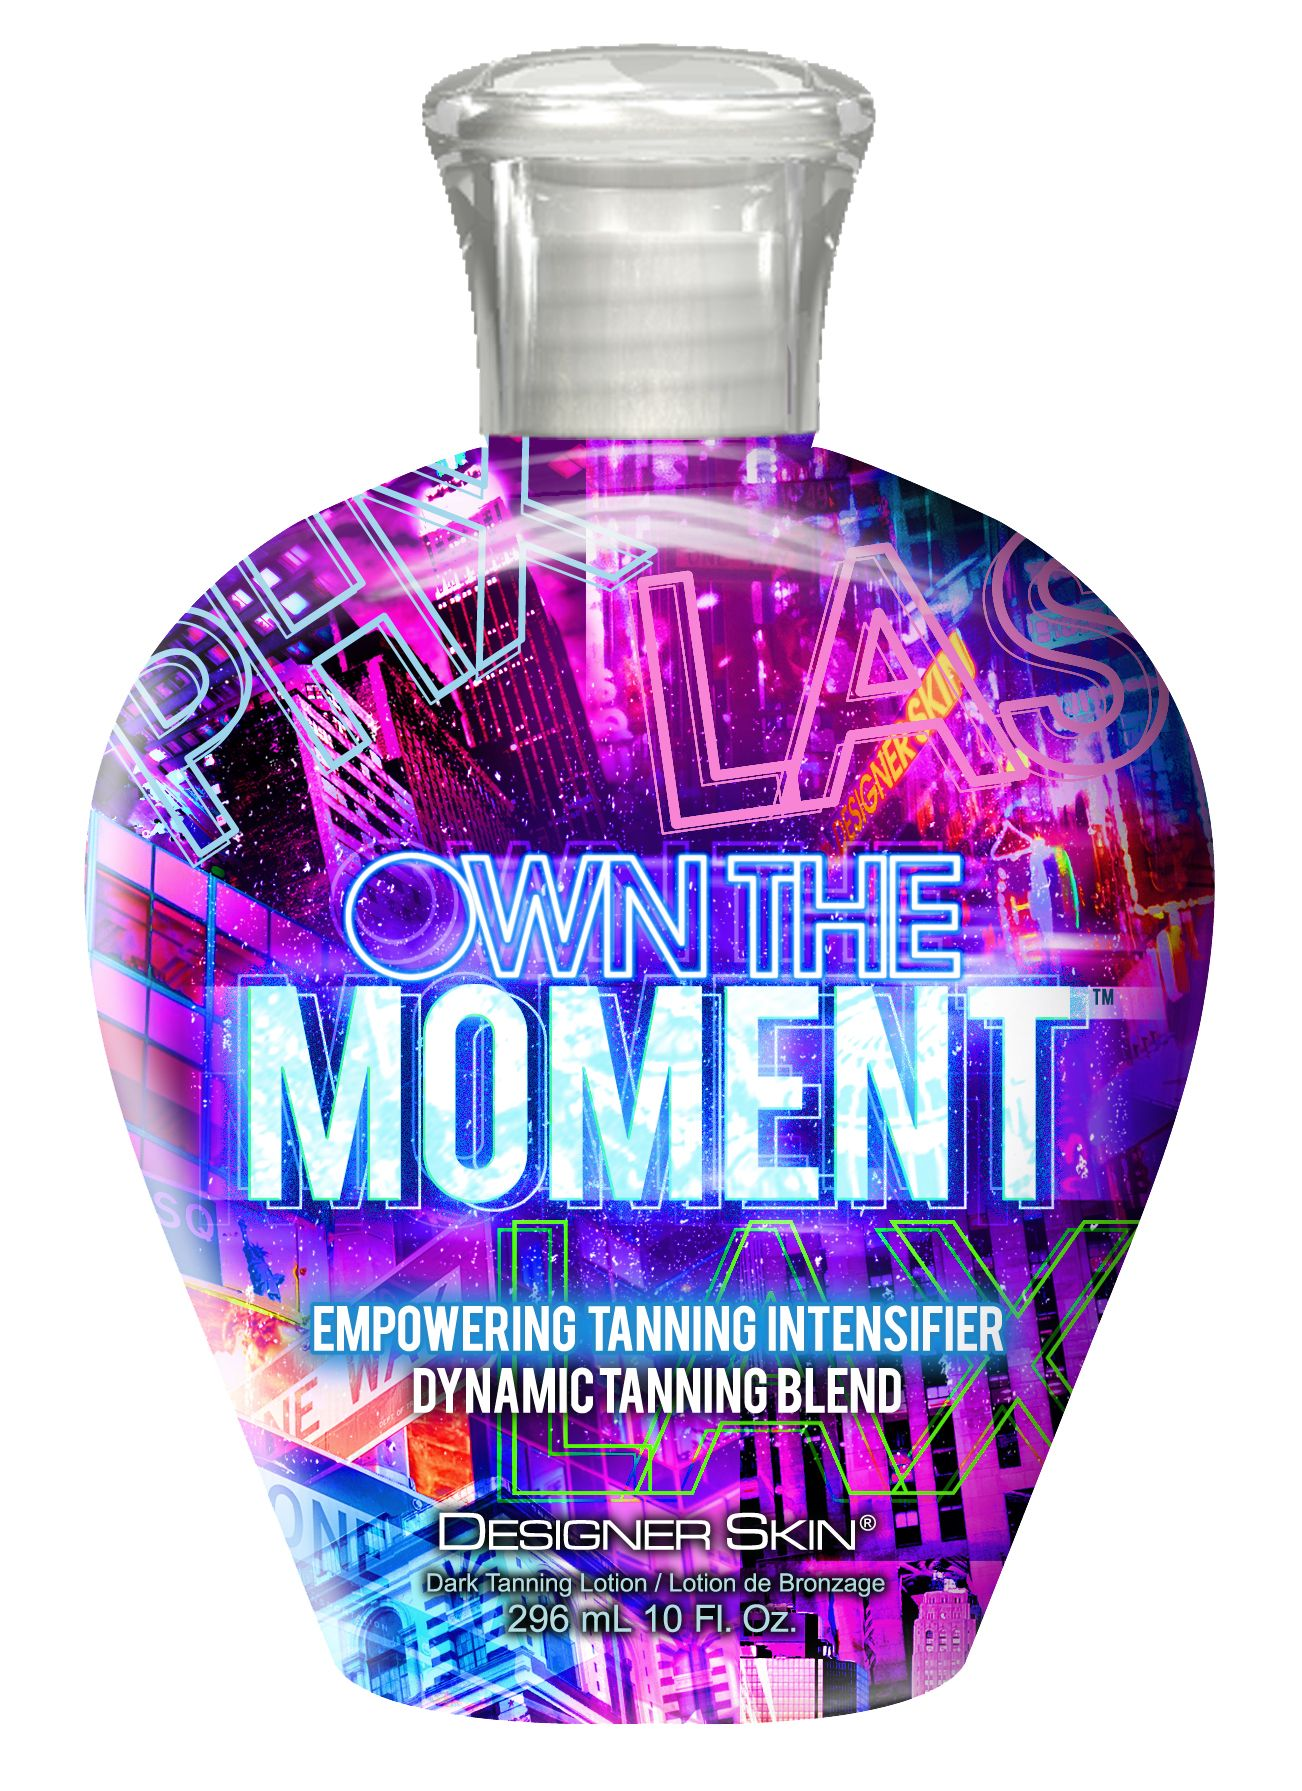 Own the Moment™ Empowering Tanning Intensifier 2015